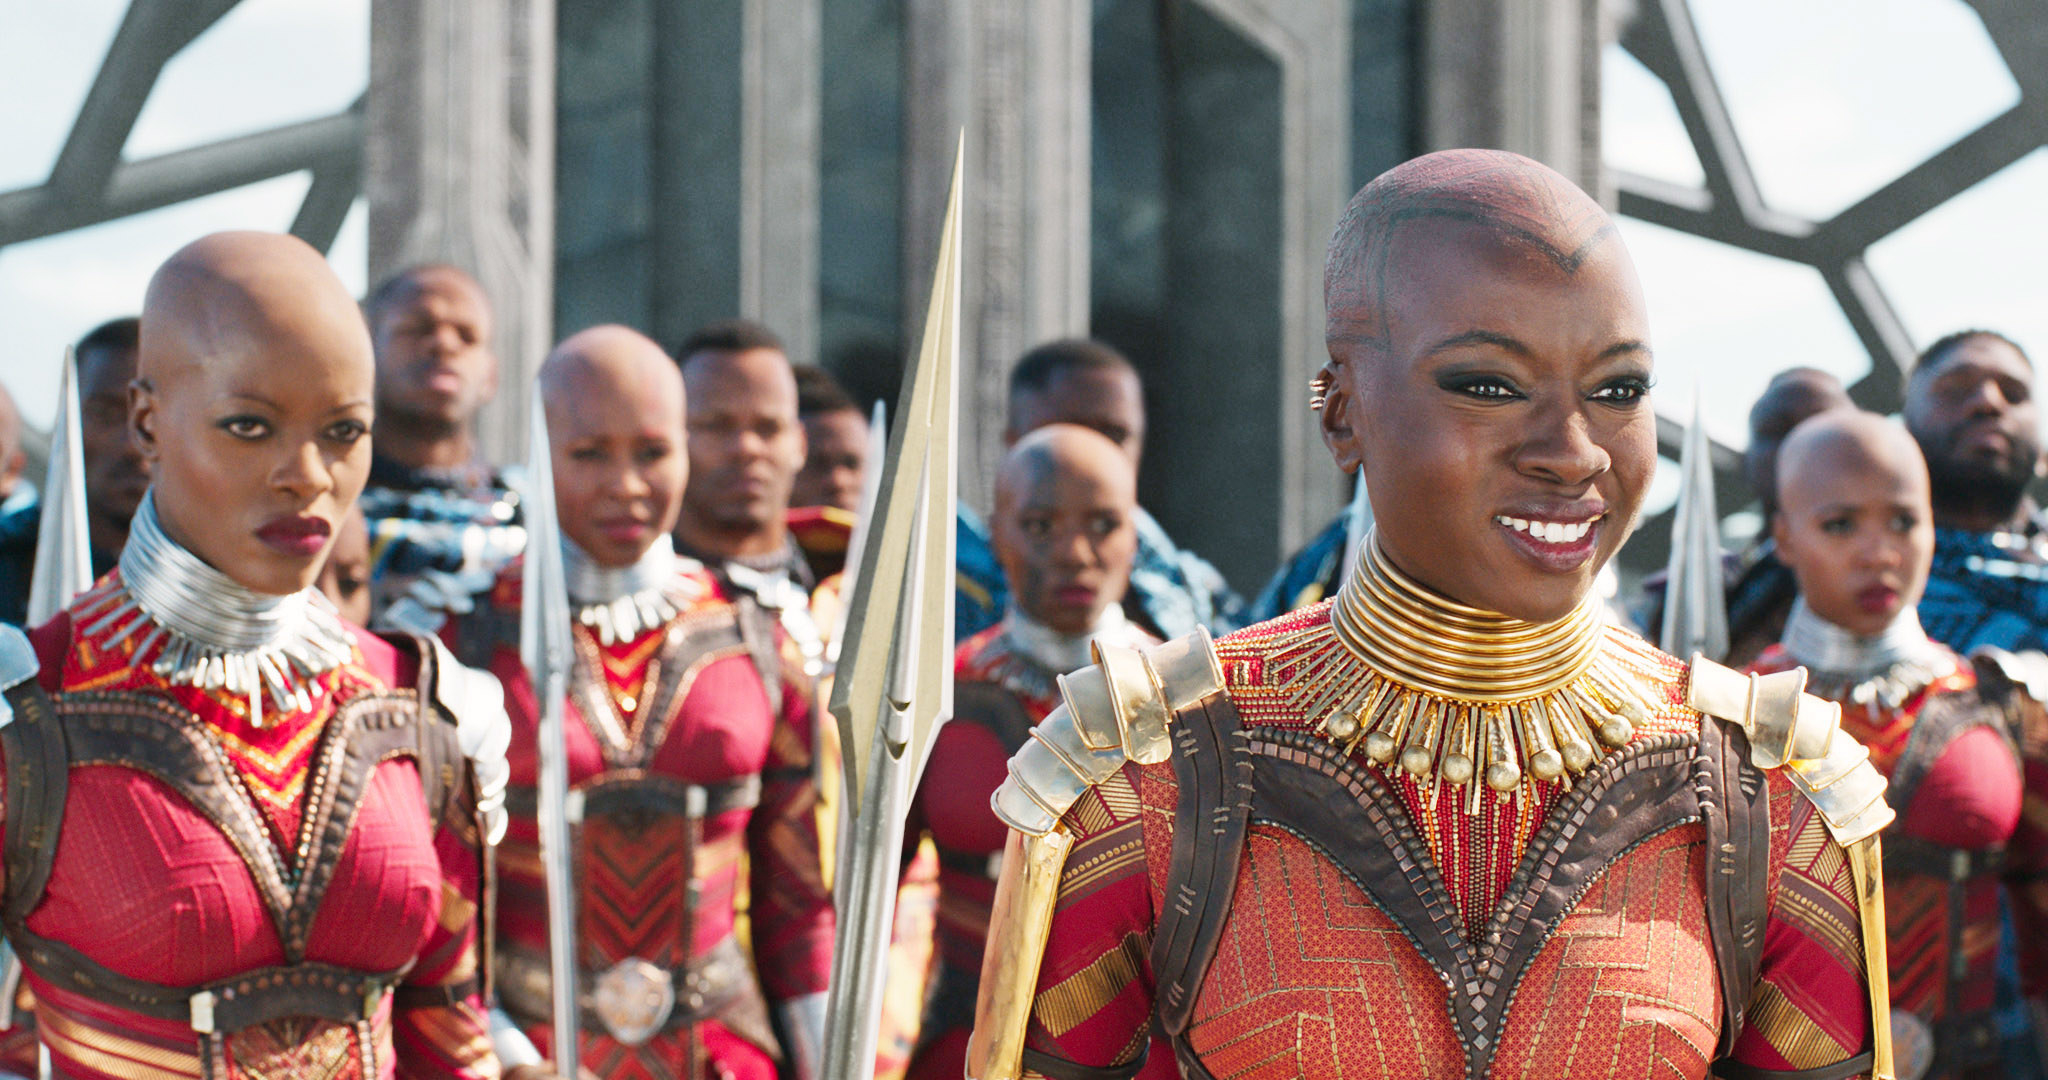 Okoye smiling as she stands in front of other members of the Dora Milaje